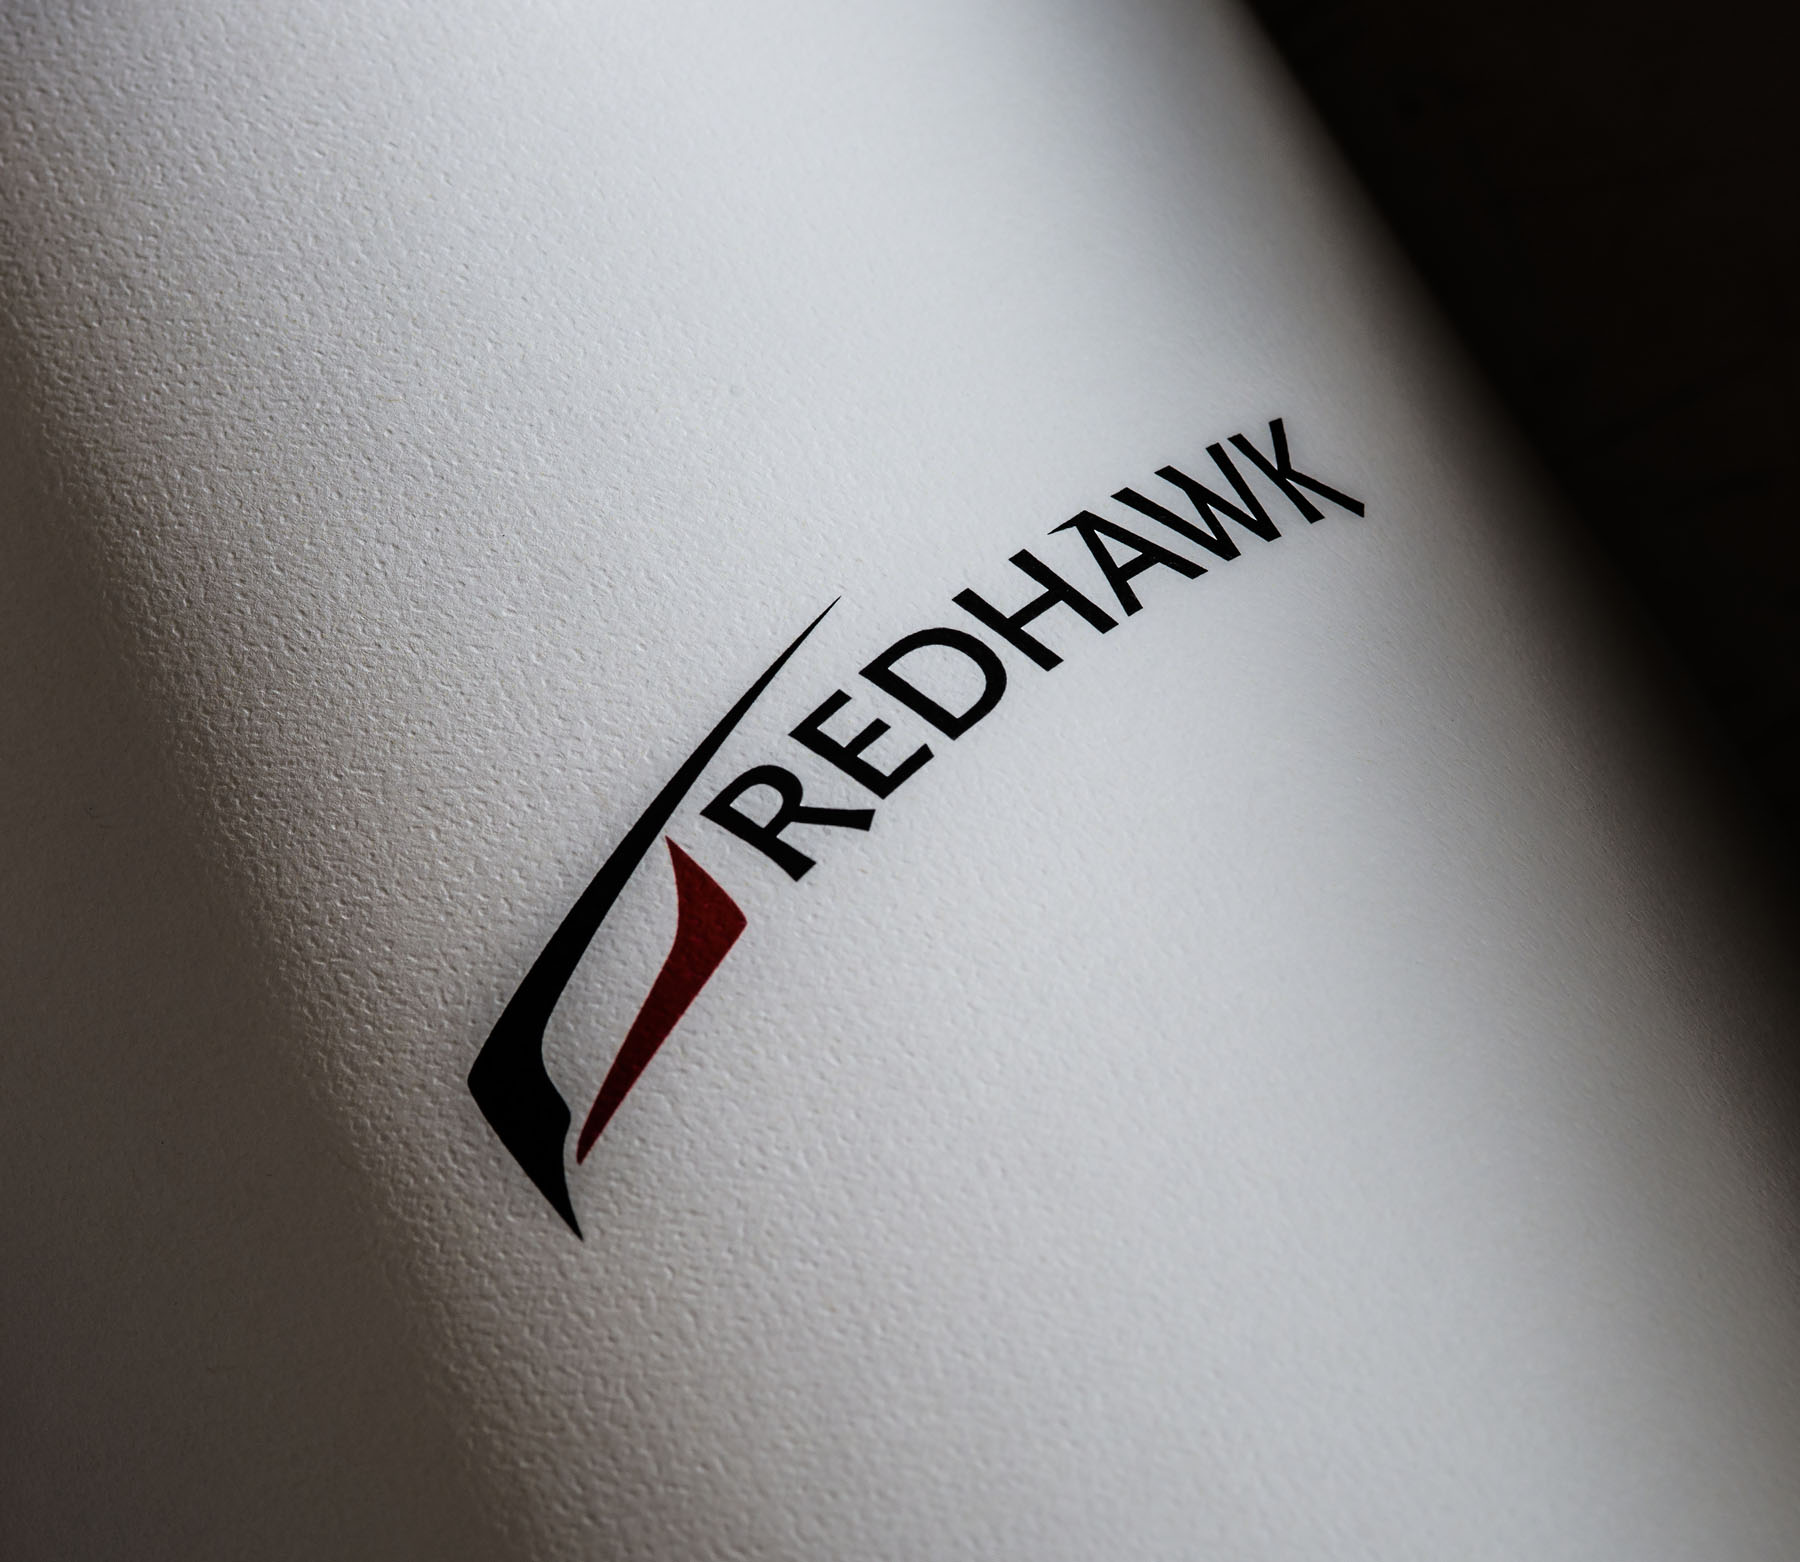 REDHAWK NETWORK SECURITY